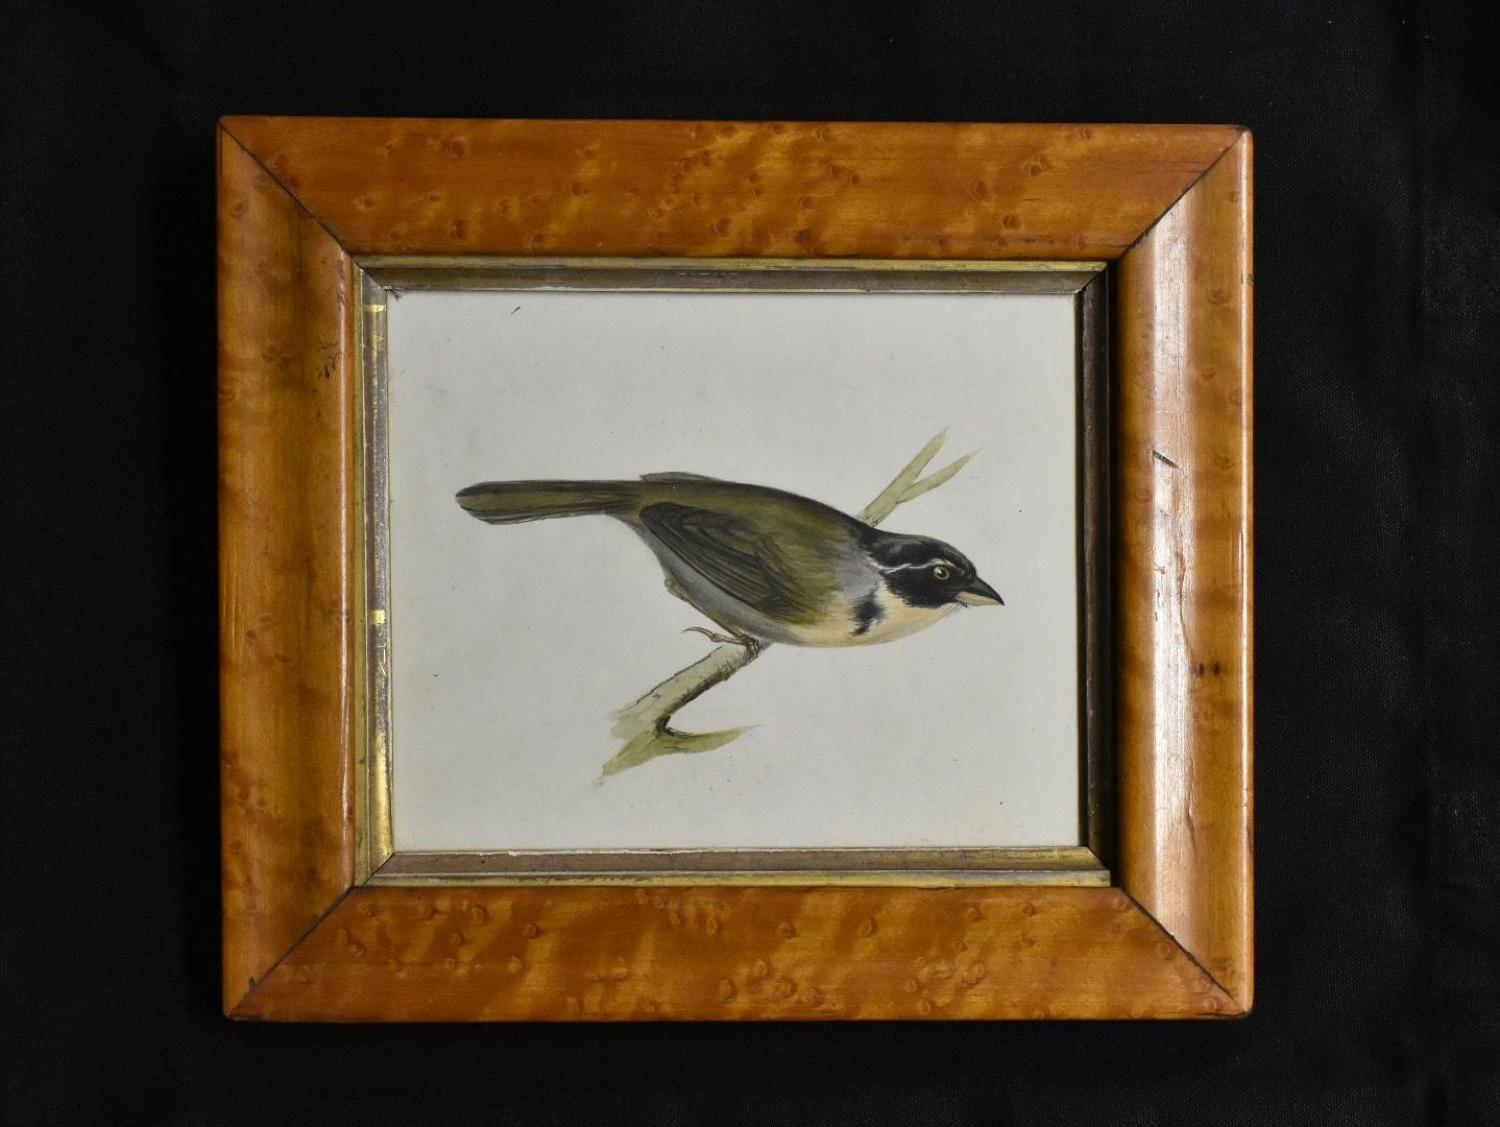 19th century watercolour - 'Coal Tit'